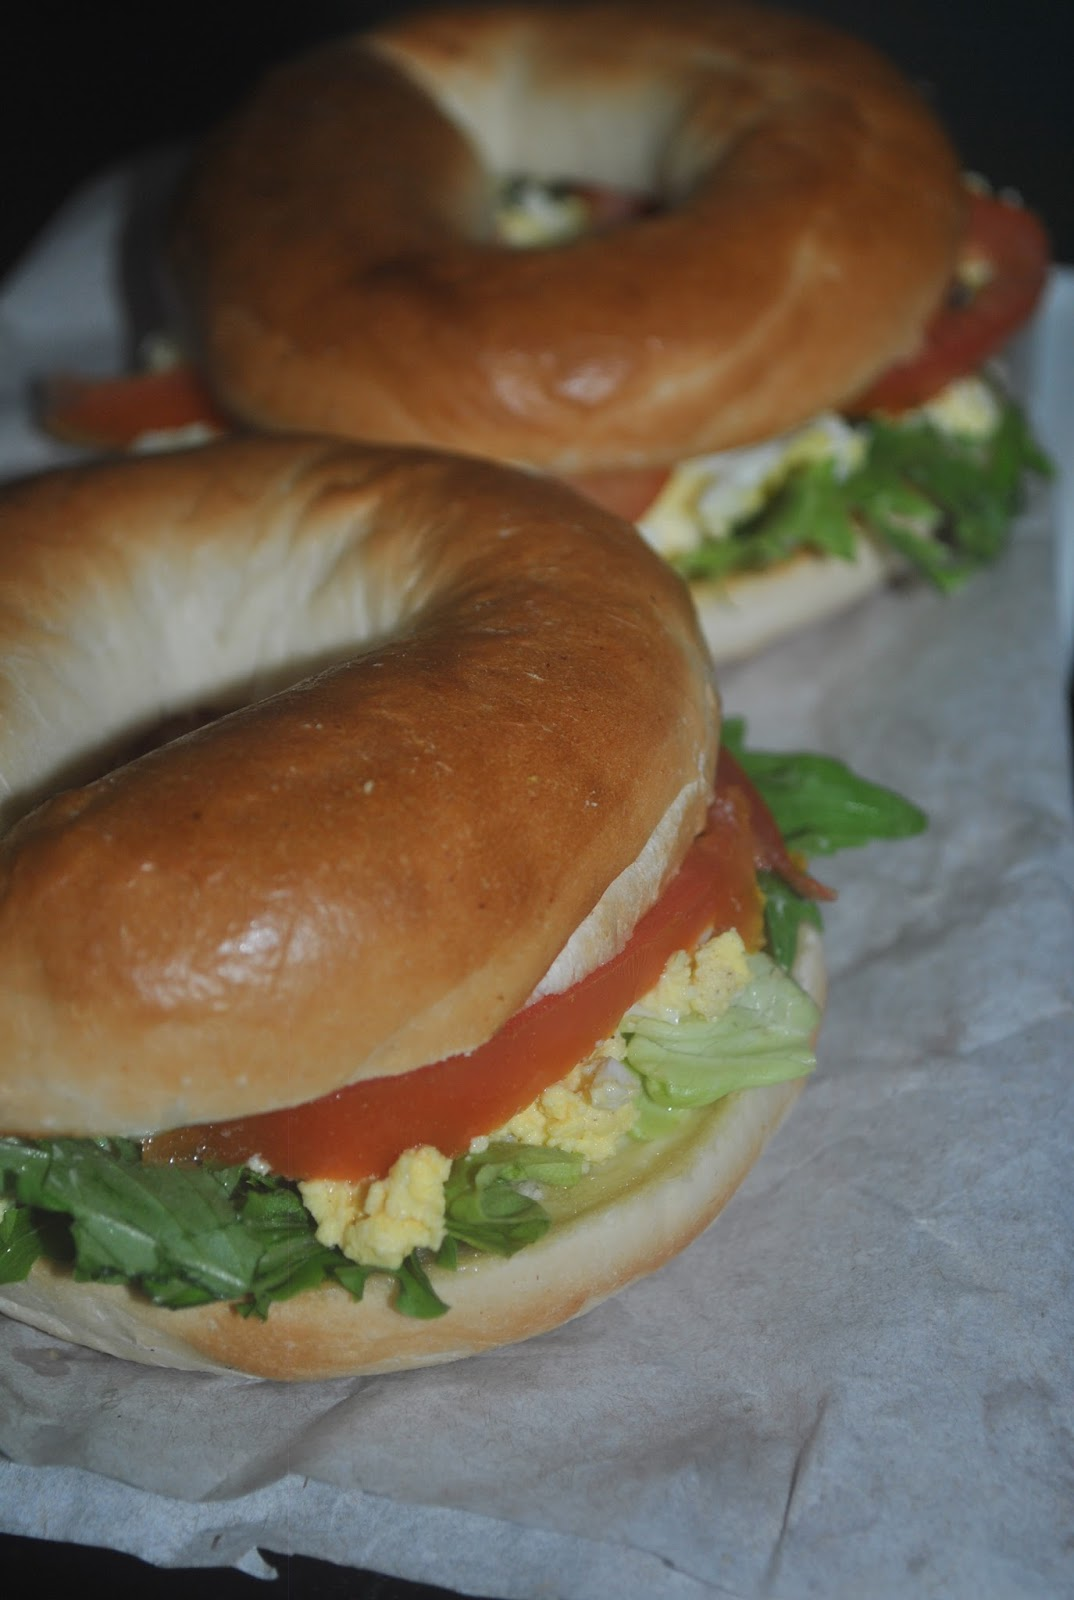 PATYSKITCHEN: EGG BAGEL SANDWICH